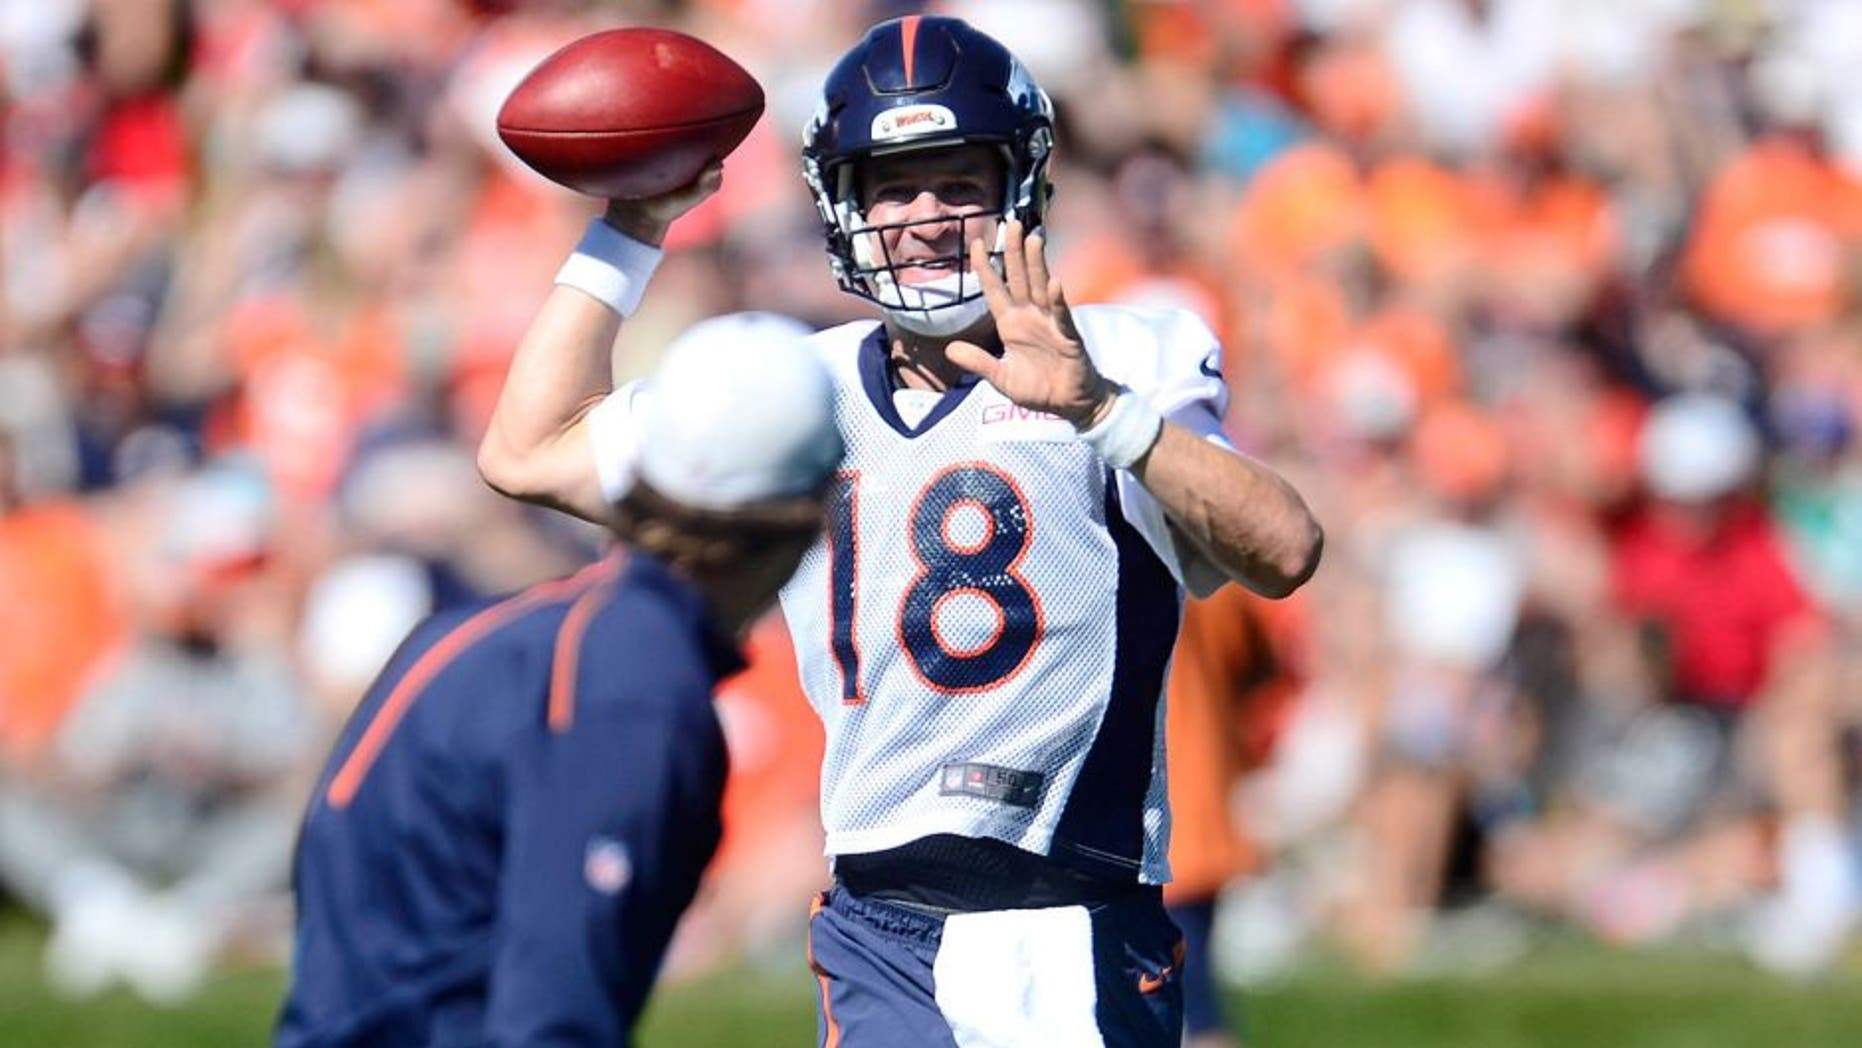 Aug 12, 2015; Englewood, CO, USA; Denver Broncos quarterback Peyton Manning (18) warms up with passing drills during training camp activities at the UCHealth Training Center. Mandatory Credit: Ron Chenoy-USA TODAY Sports